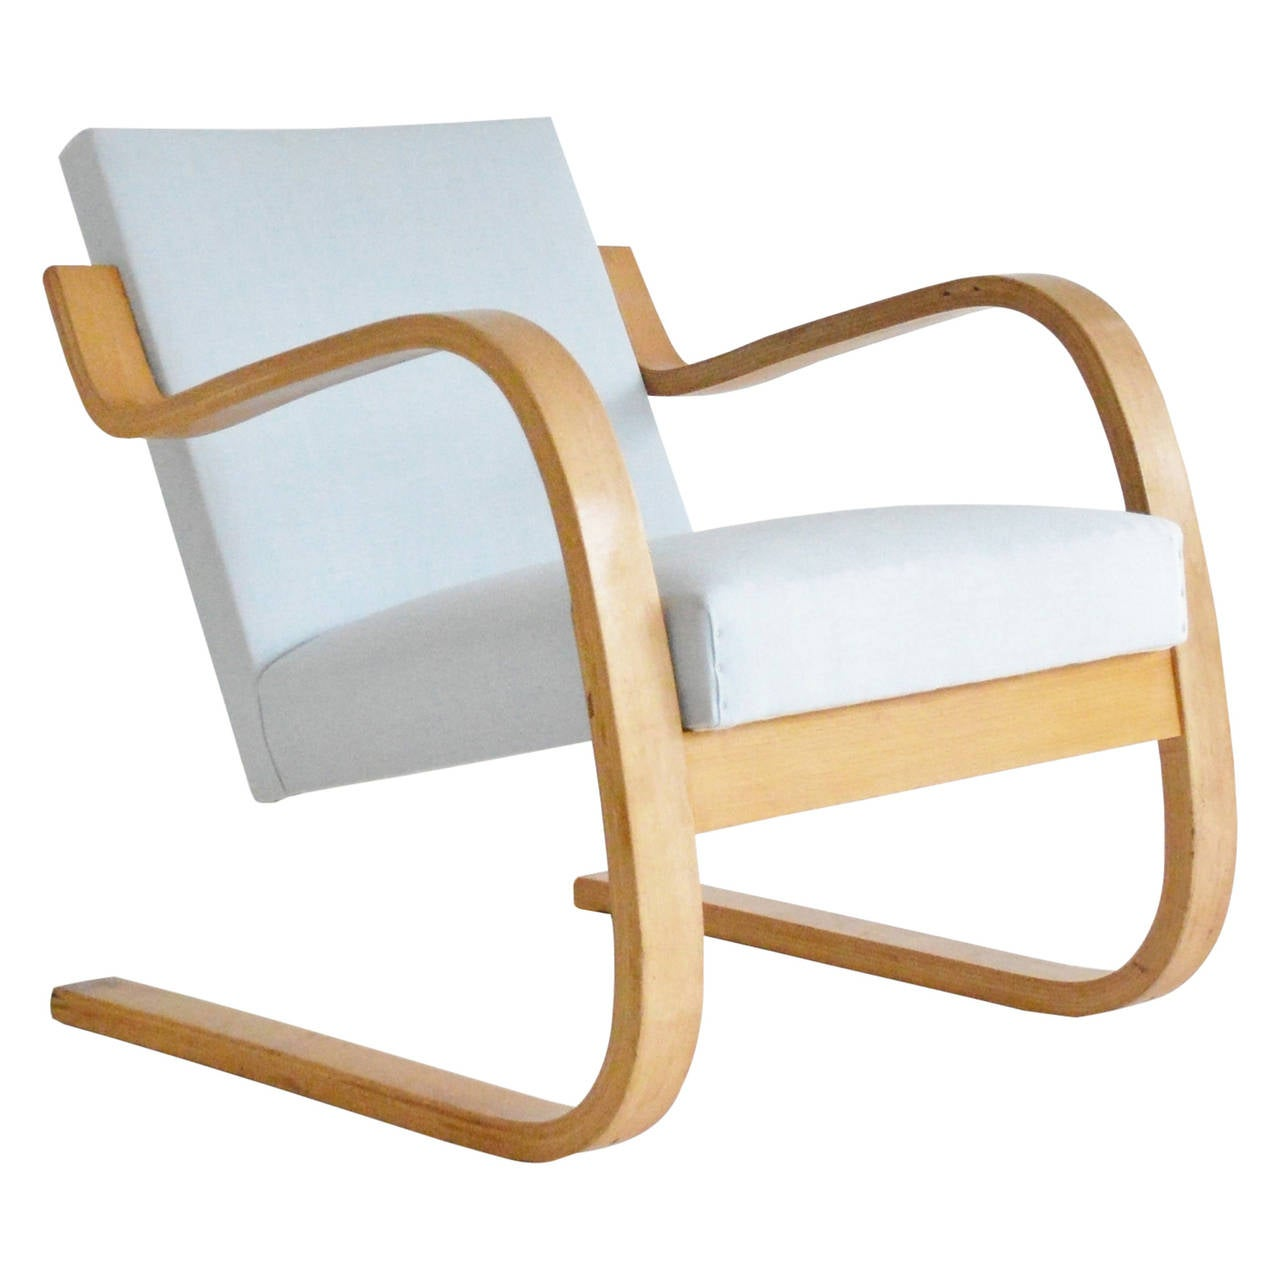 Alvar aalto model 34 402 chair early edition for finmar for Alvar aalto chaise